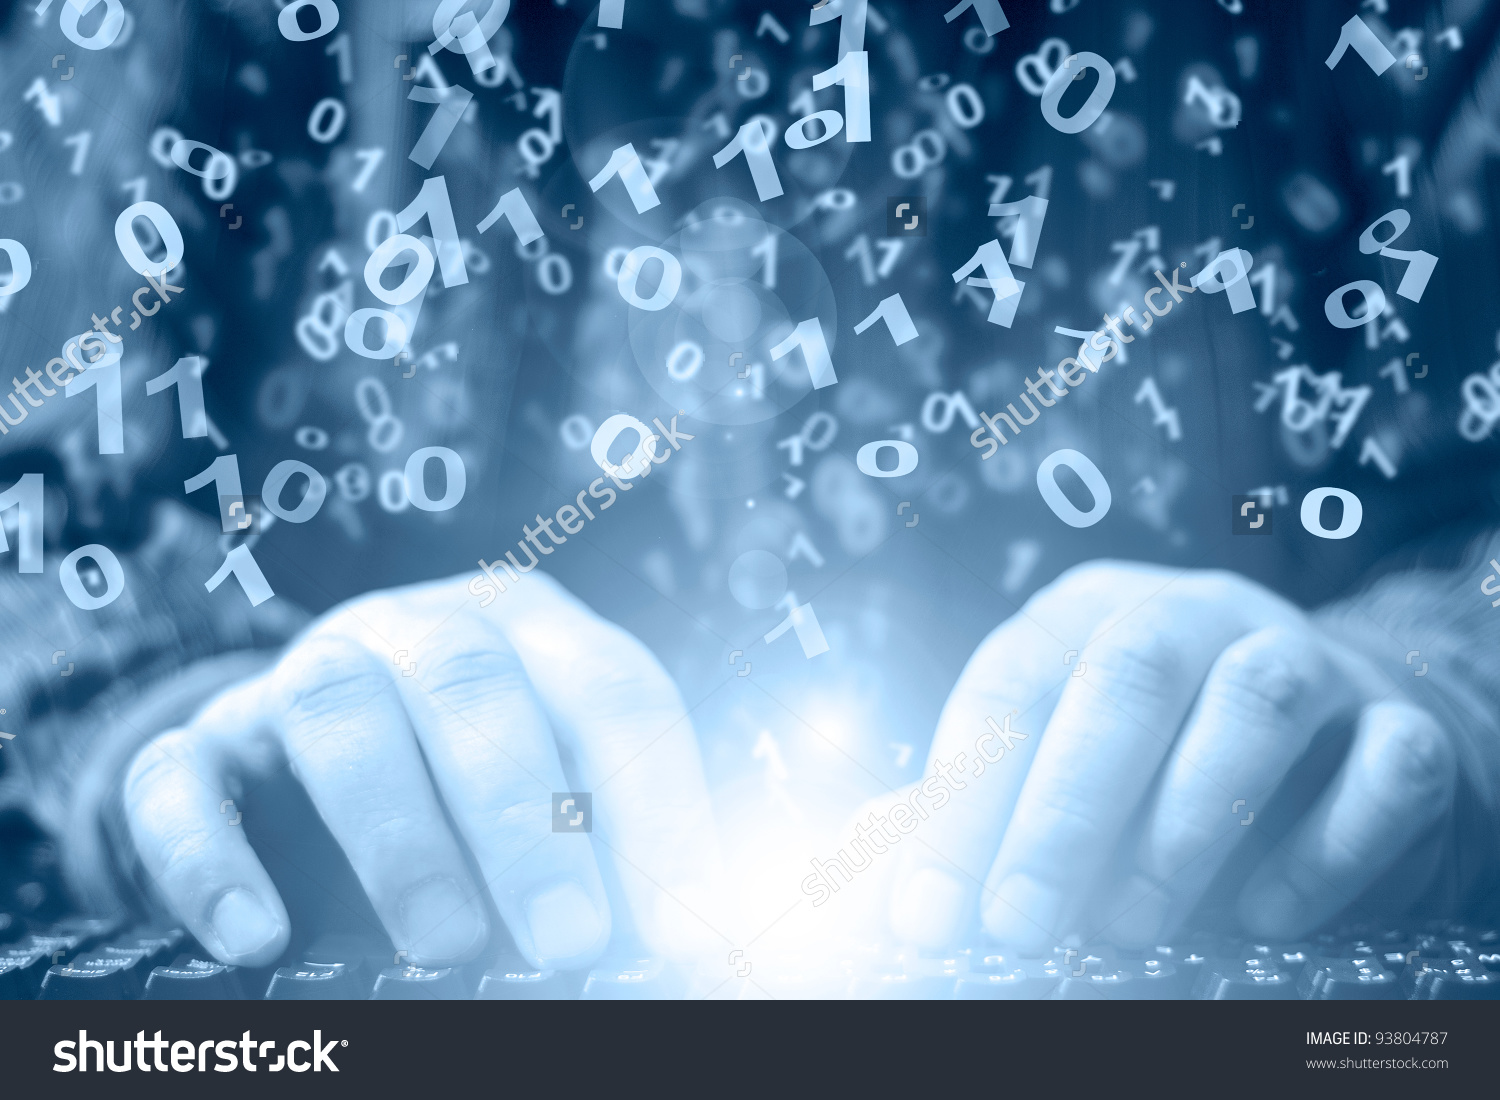 Hands On Keyboard Abstract Computer Background Stock Photo